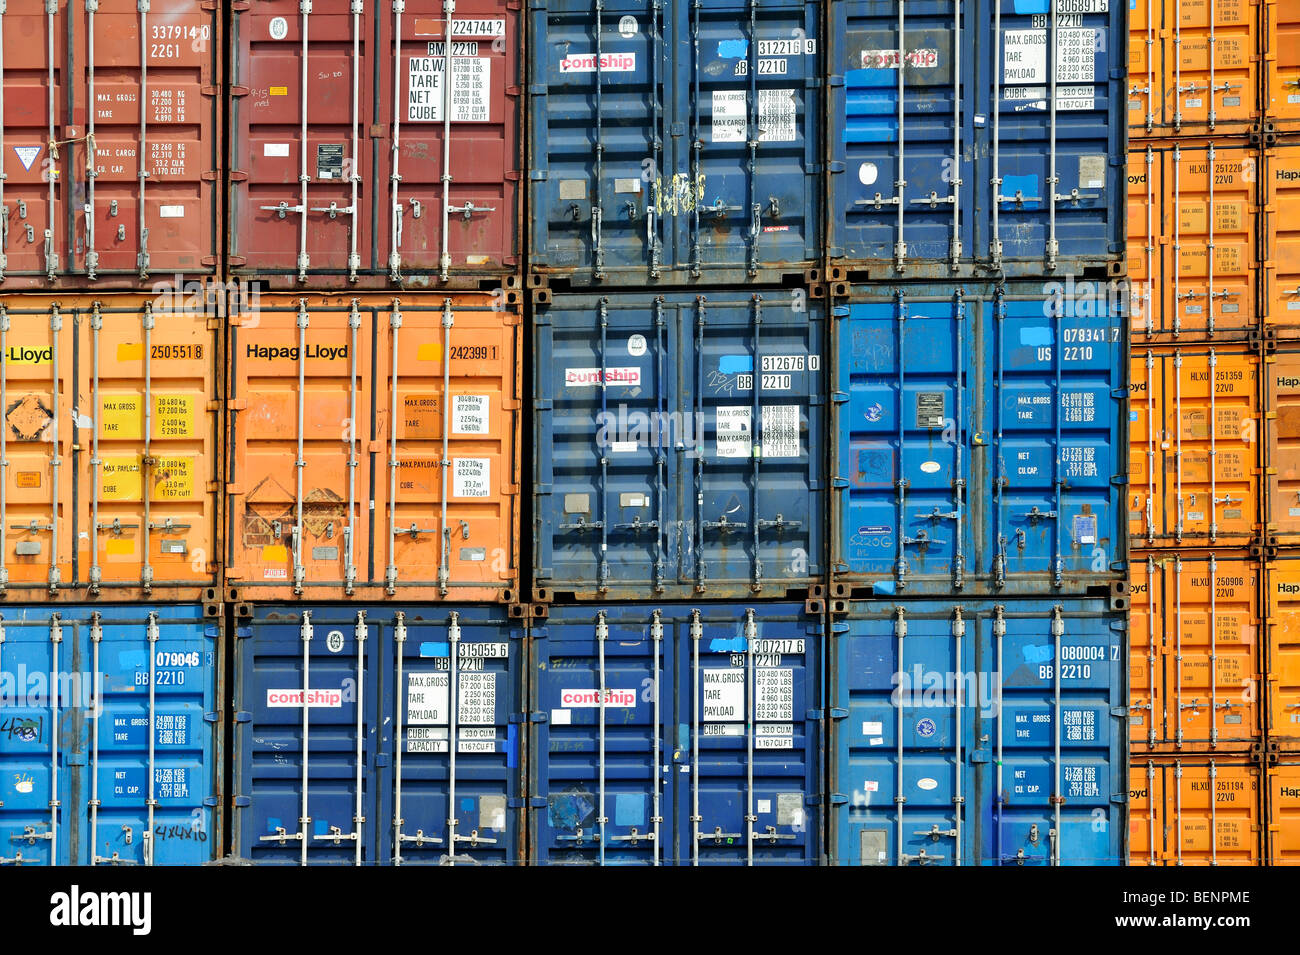 Piled up / Stacked up shipping containers at container terminal in port Stock Photo